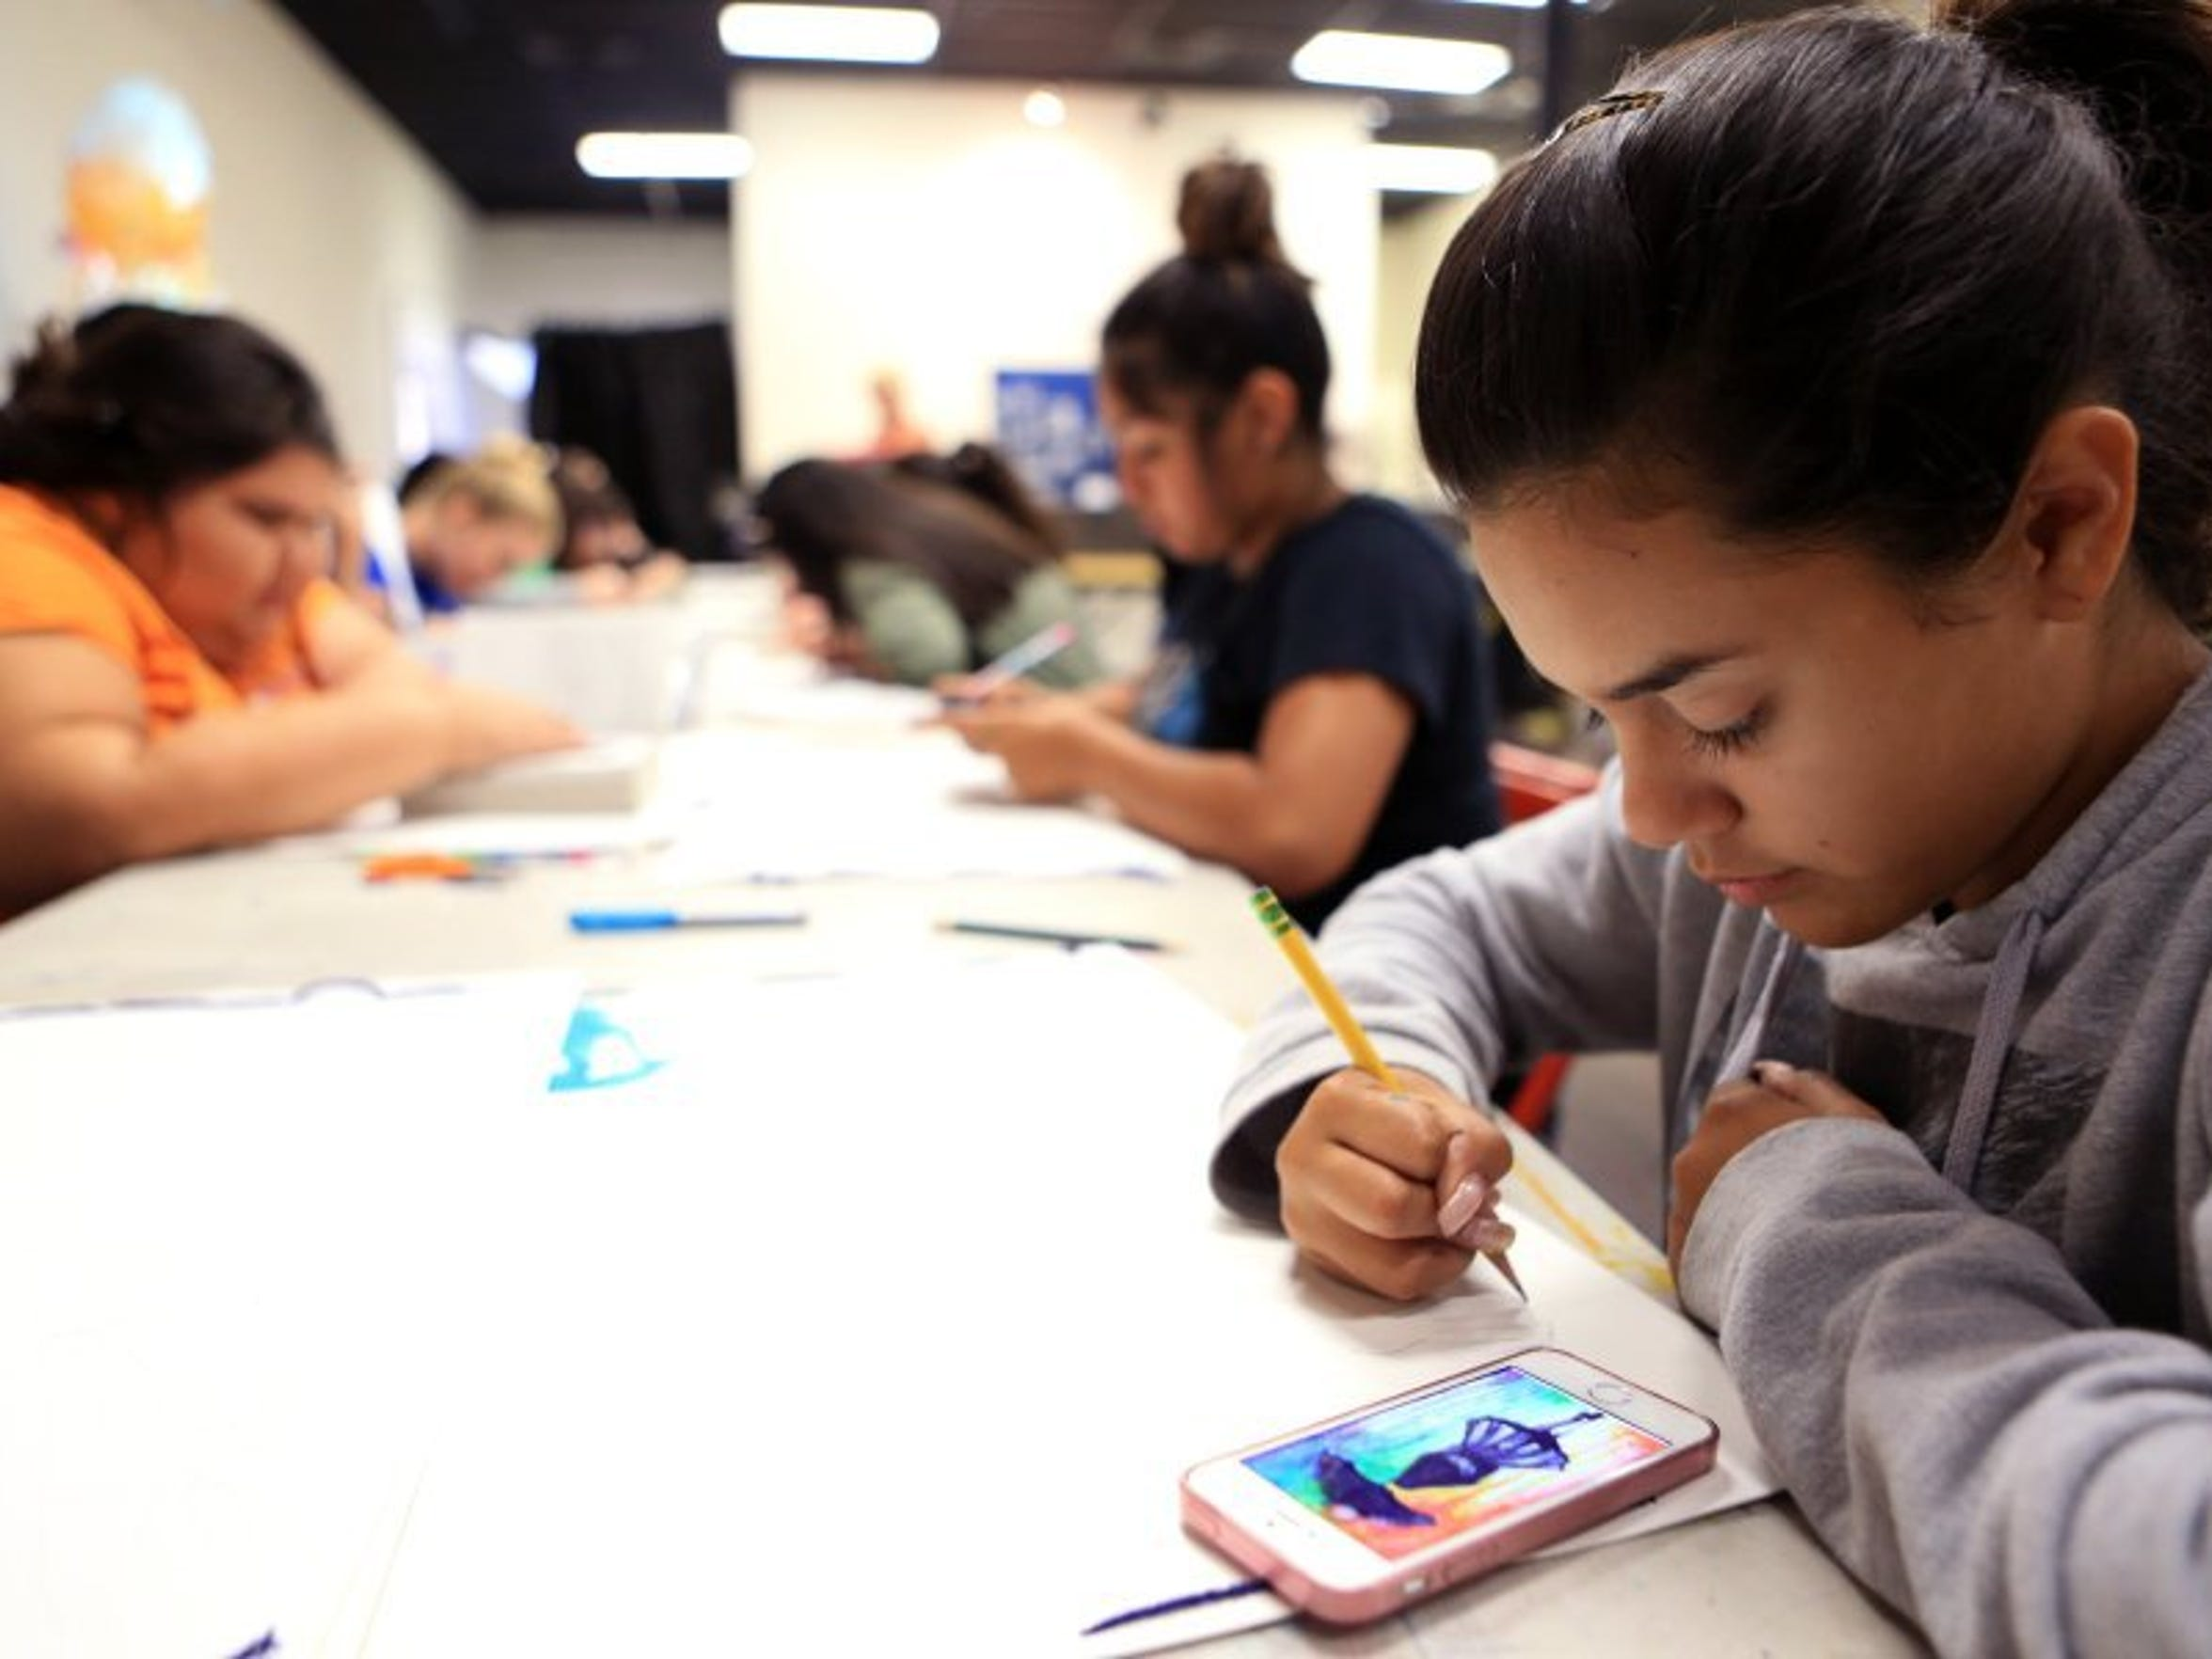 Rachel Denny Clow/Caller-Times Selena Loza, 13, draws an outline while working on a portfolio during downtime in a printmaking art camp at K Space Contemporary on Monday, July 25, 2016. This is the last week the art gallery is hosting summer art camps.